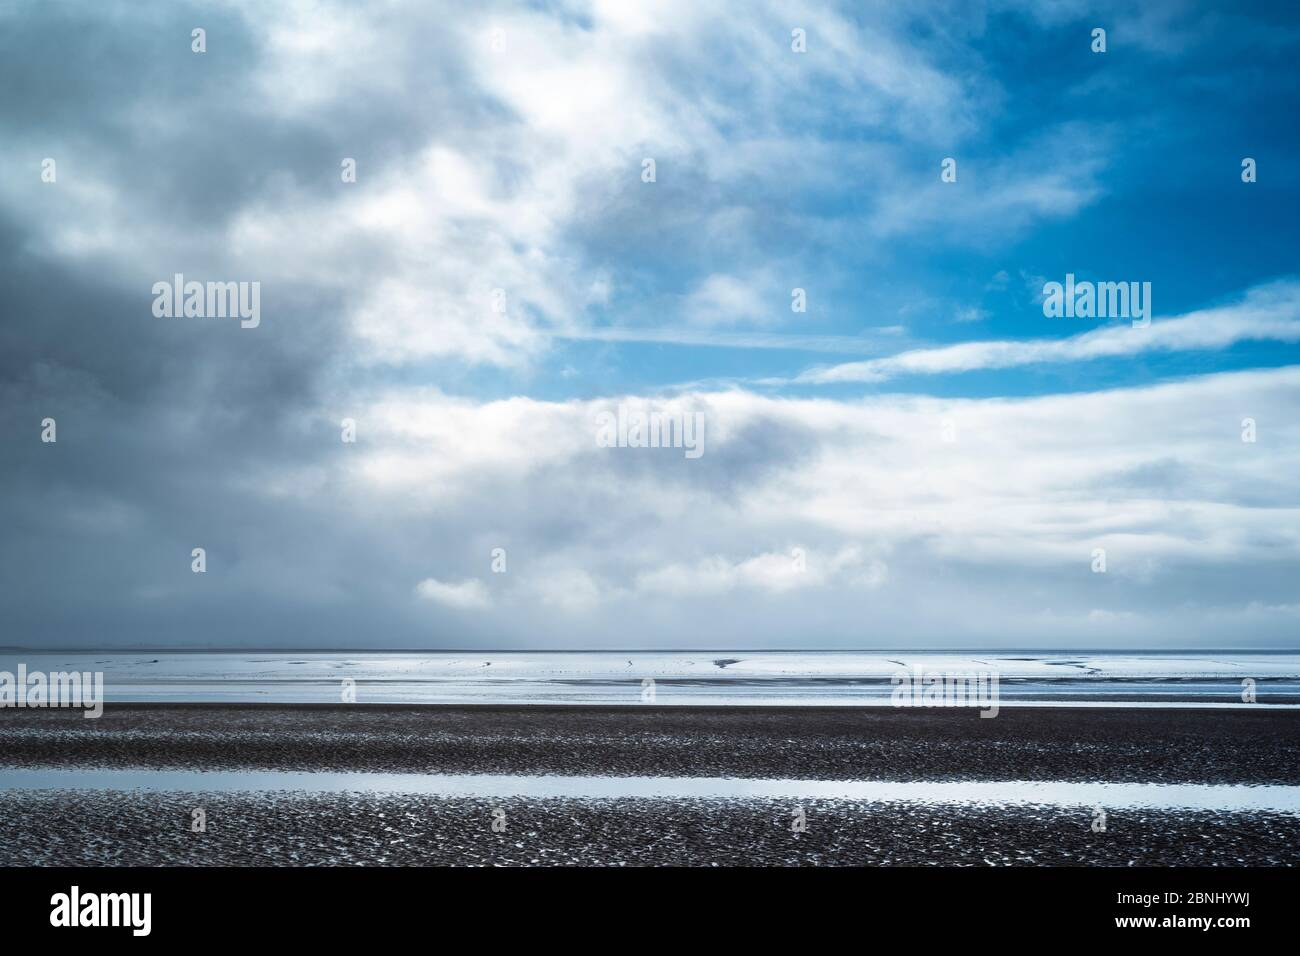 Pastel shades of sea and sandy beach under cerulean sky of the Bristol Channel at Burnham-on-Sea sea shore, Somerset, UK Stock Photo